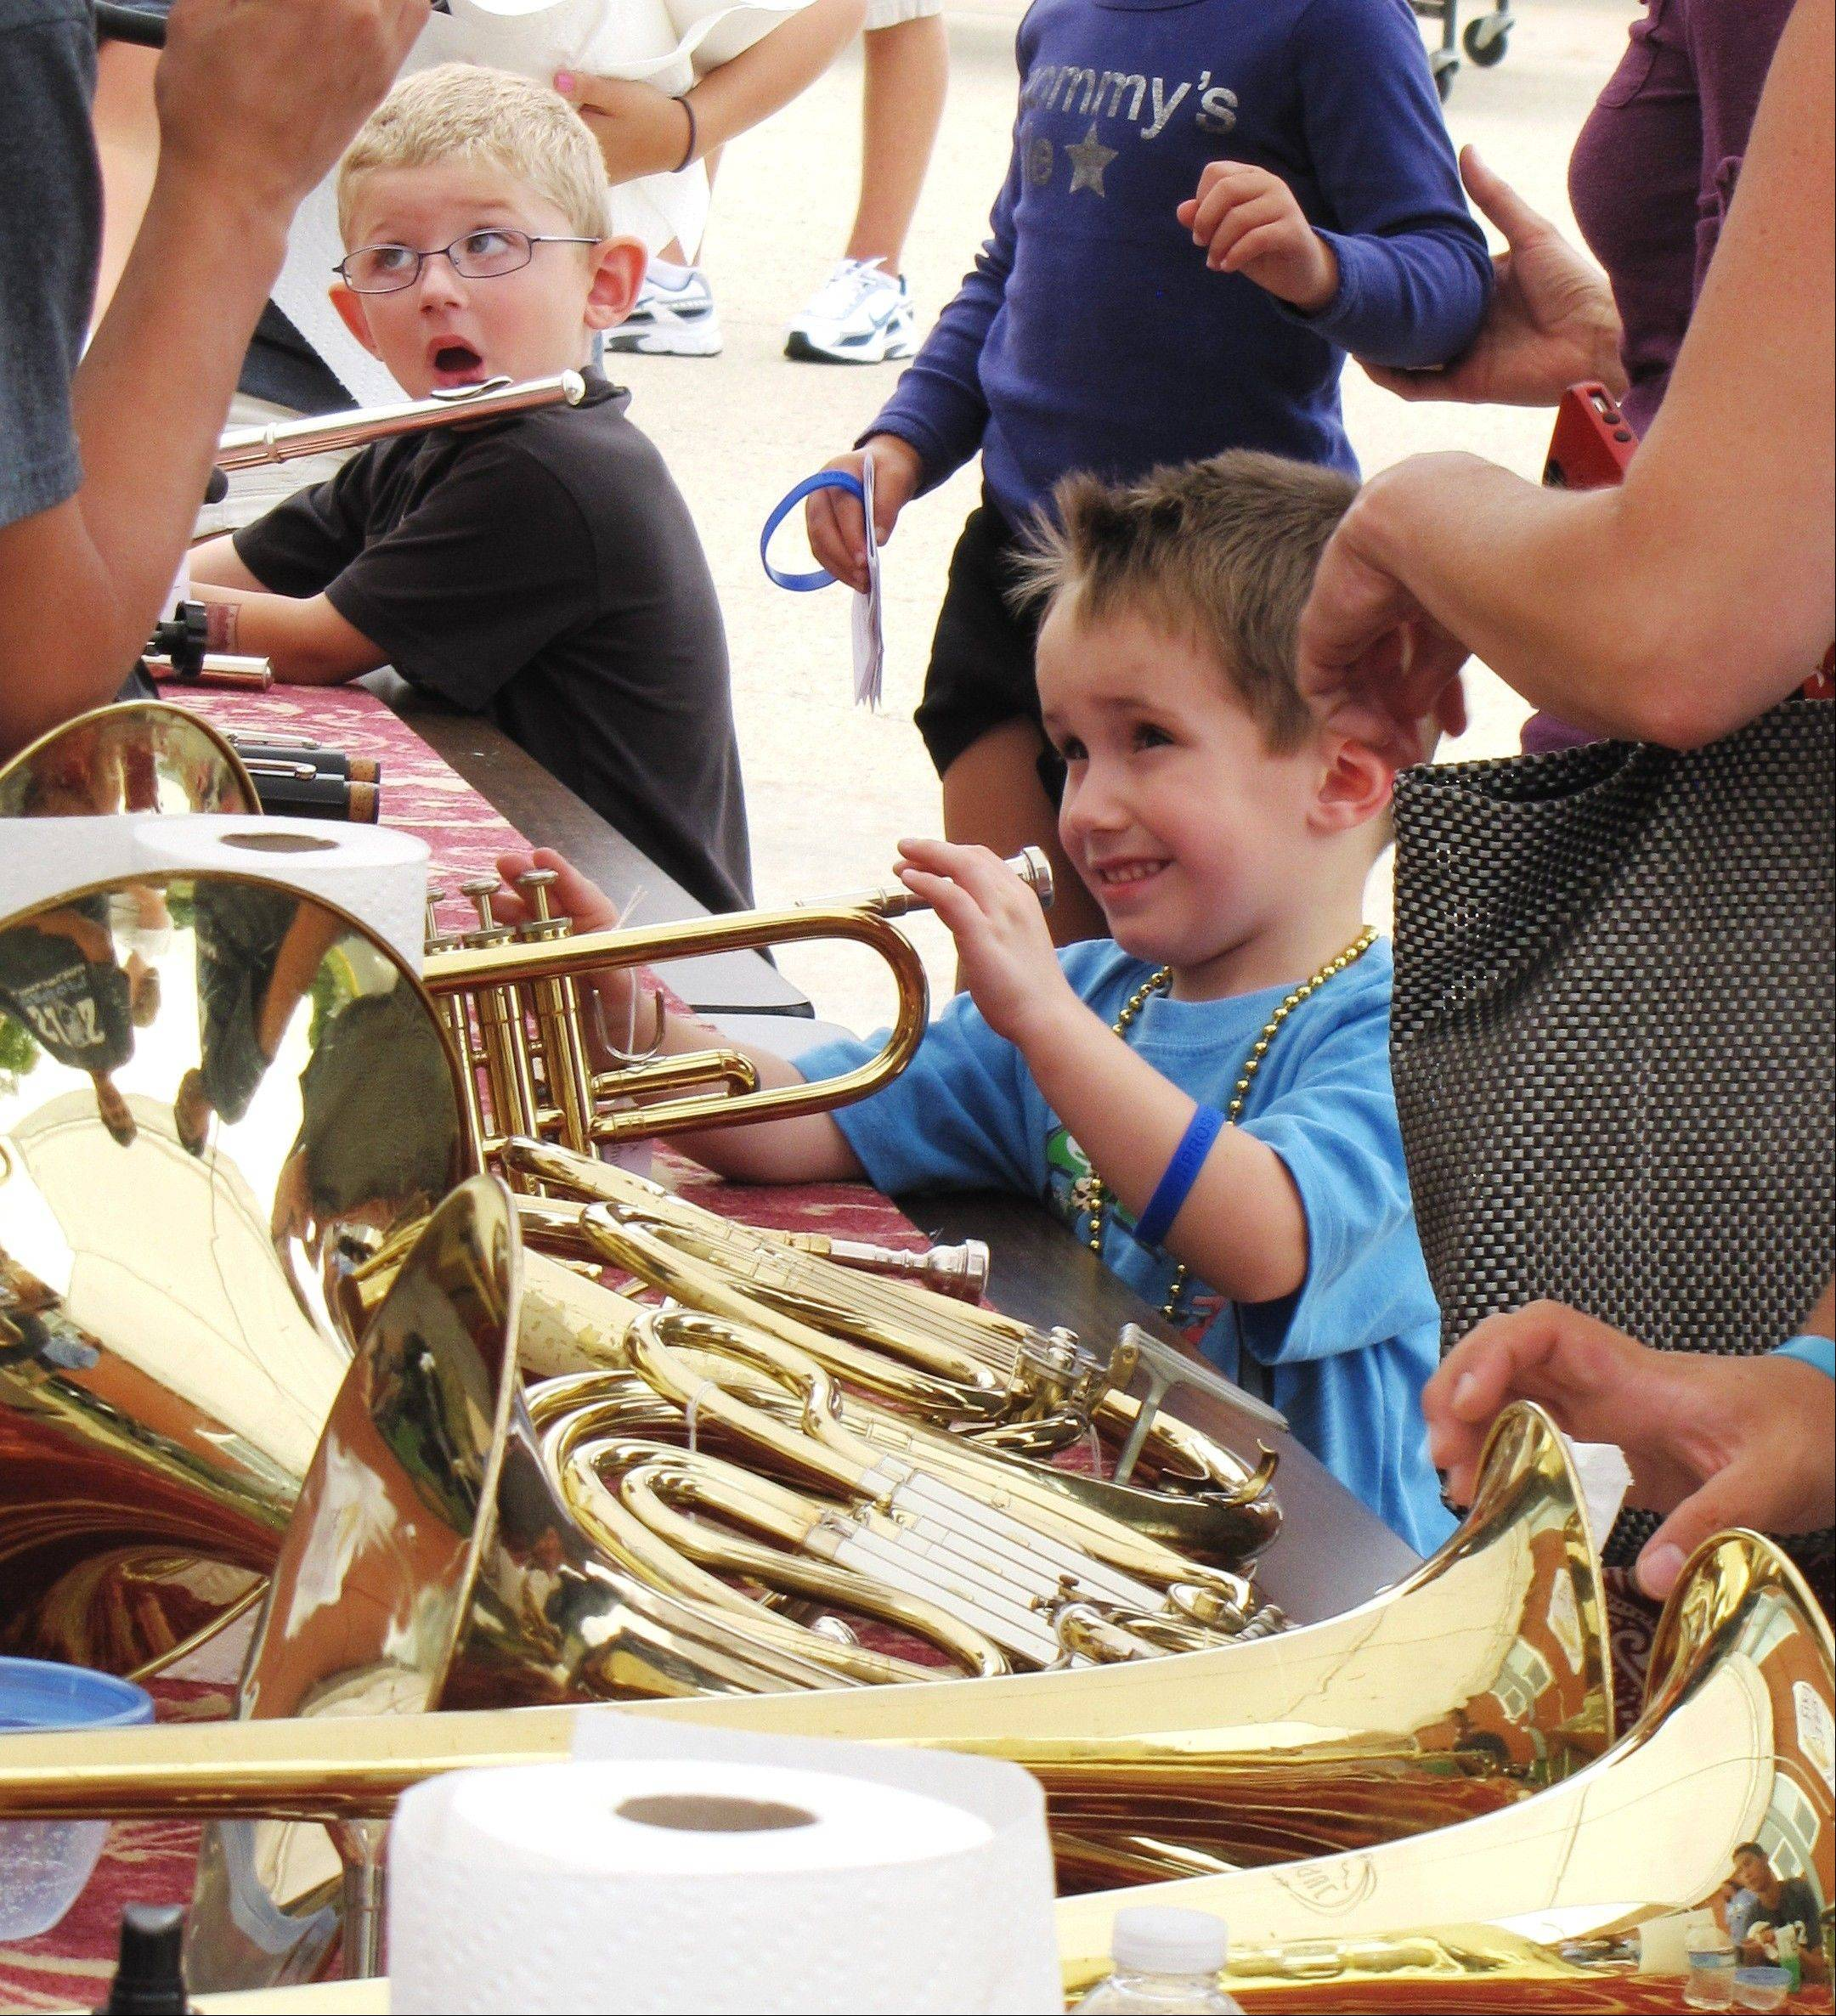 Sam Buttitta, 4, left, and Connor Michael, 3, both of Arlington Heights, test their budding musical talents.